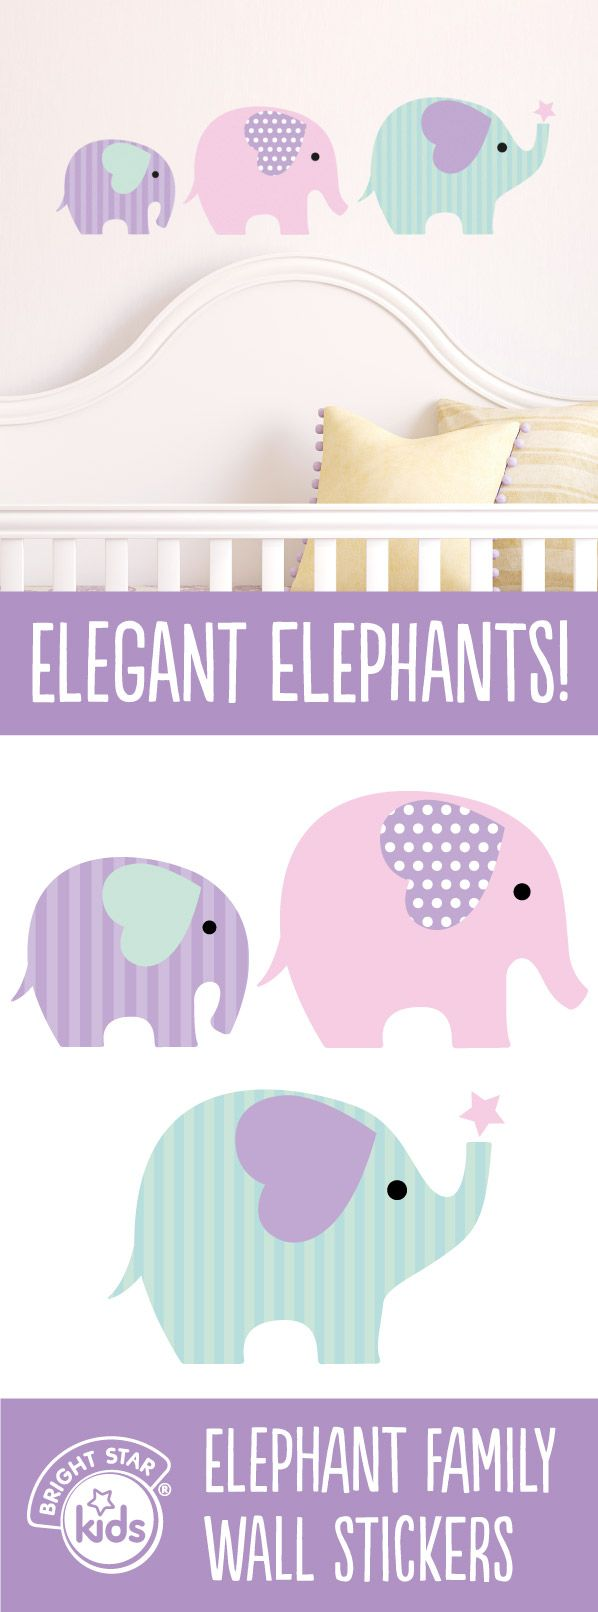 Elephant nursery wall art print mom baby dad by rizzleandrugee - Your Little One S Will Adore Having This Beautiful Elephant Family Wall Stickers In Their Room